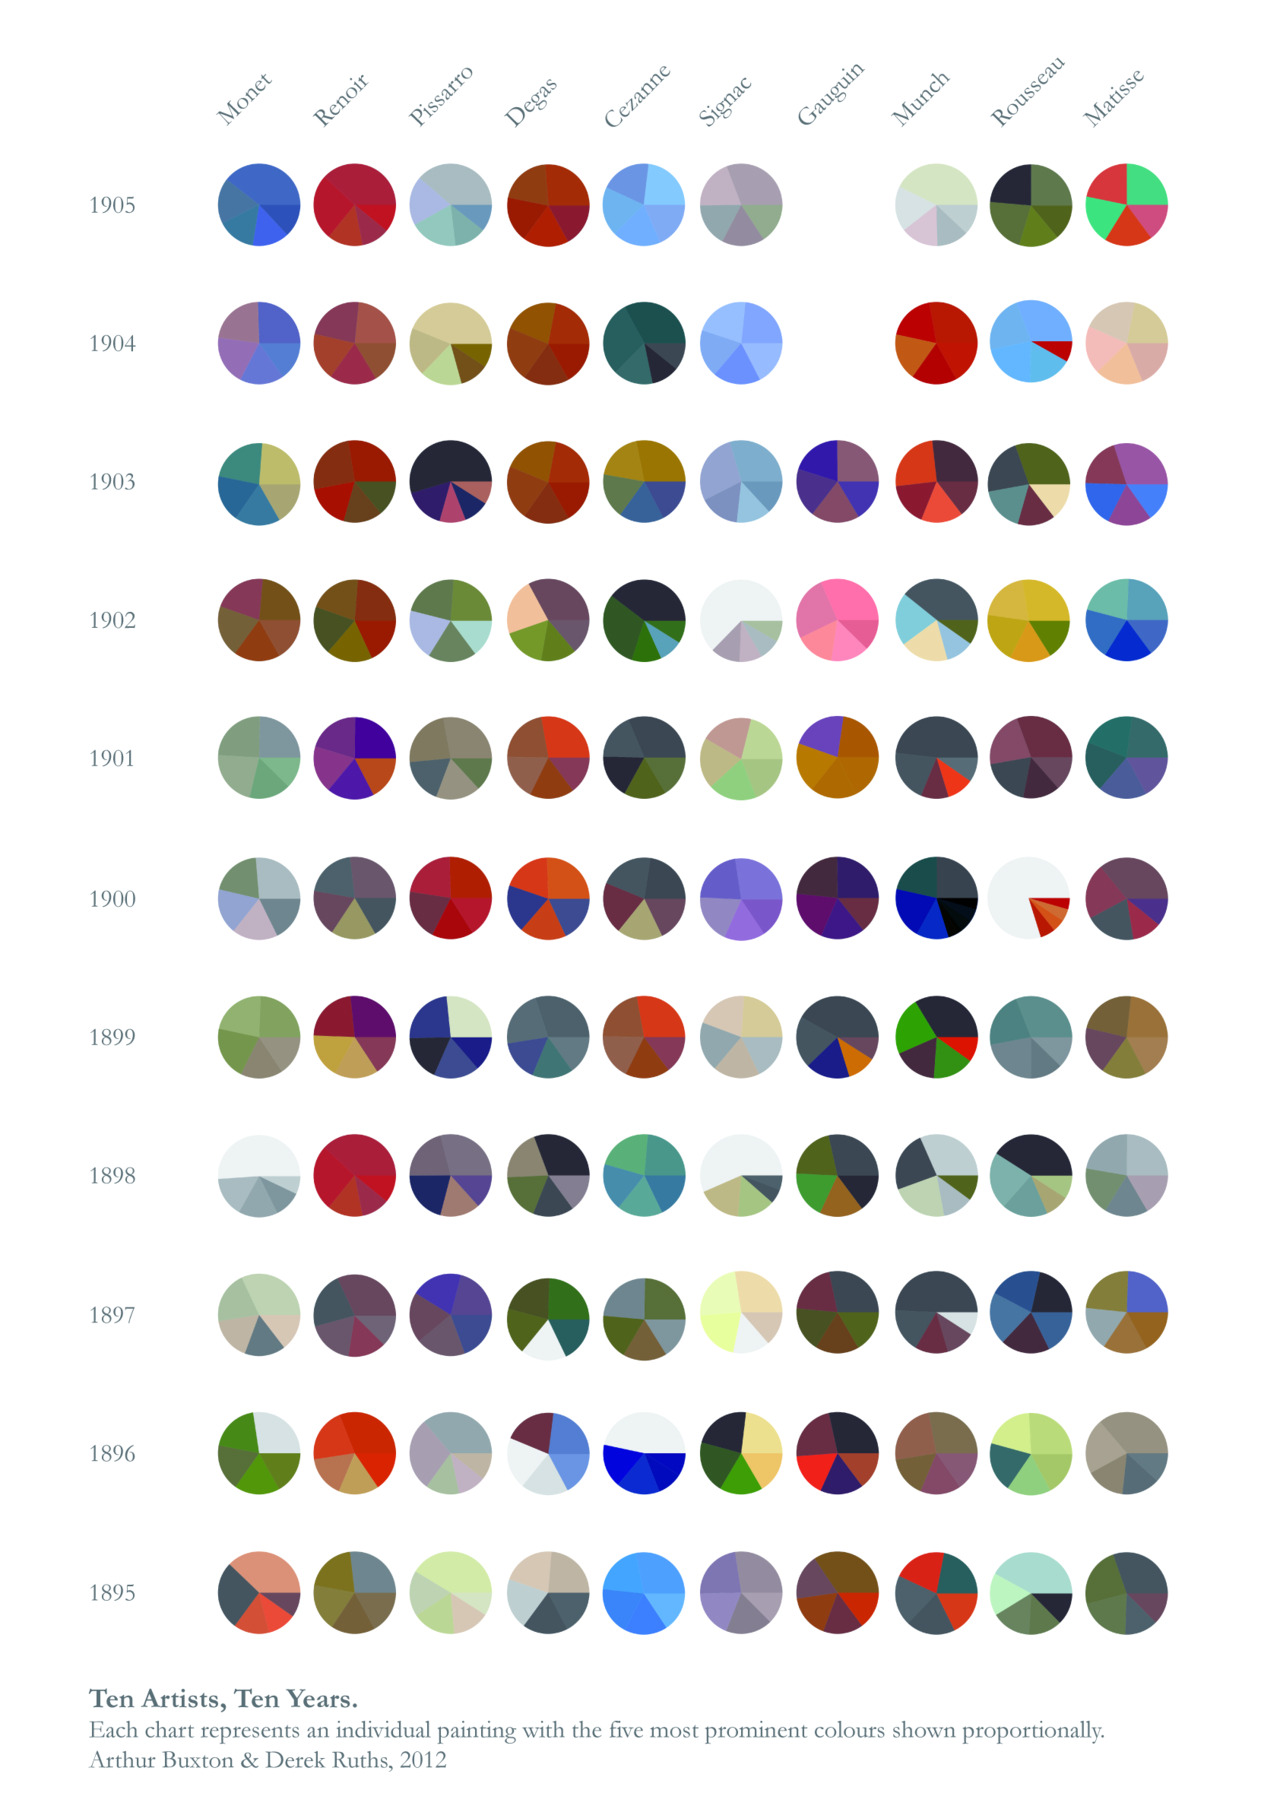 ilovecharts:  Ten extraordinary years of art history - the Impressionists, Neo - Impressionists and Post - Impressionists were responsible for a revolution in color. Within this colour trend visualisation, each chart represents an individual painting with the five most prominent colours shown proportionally.